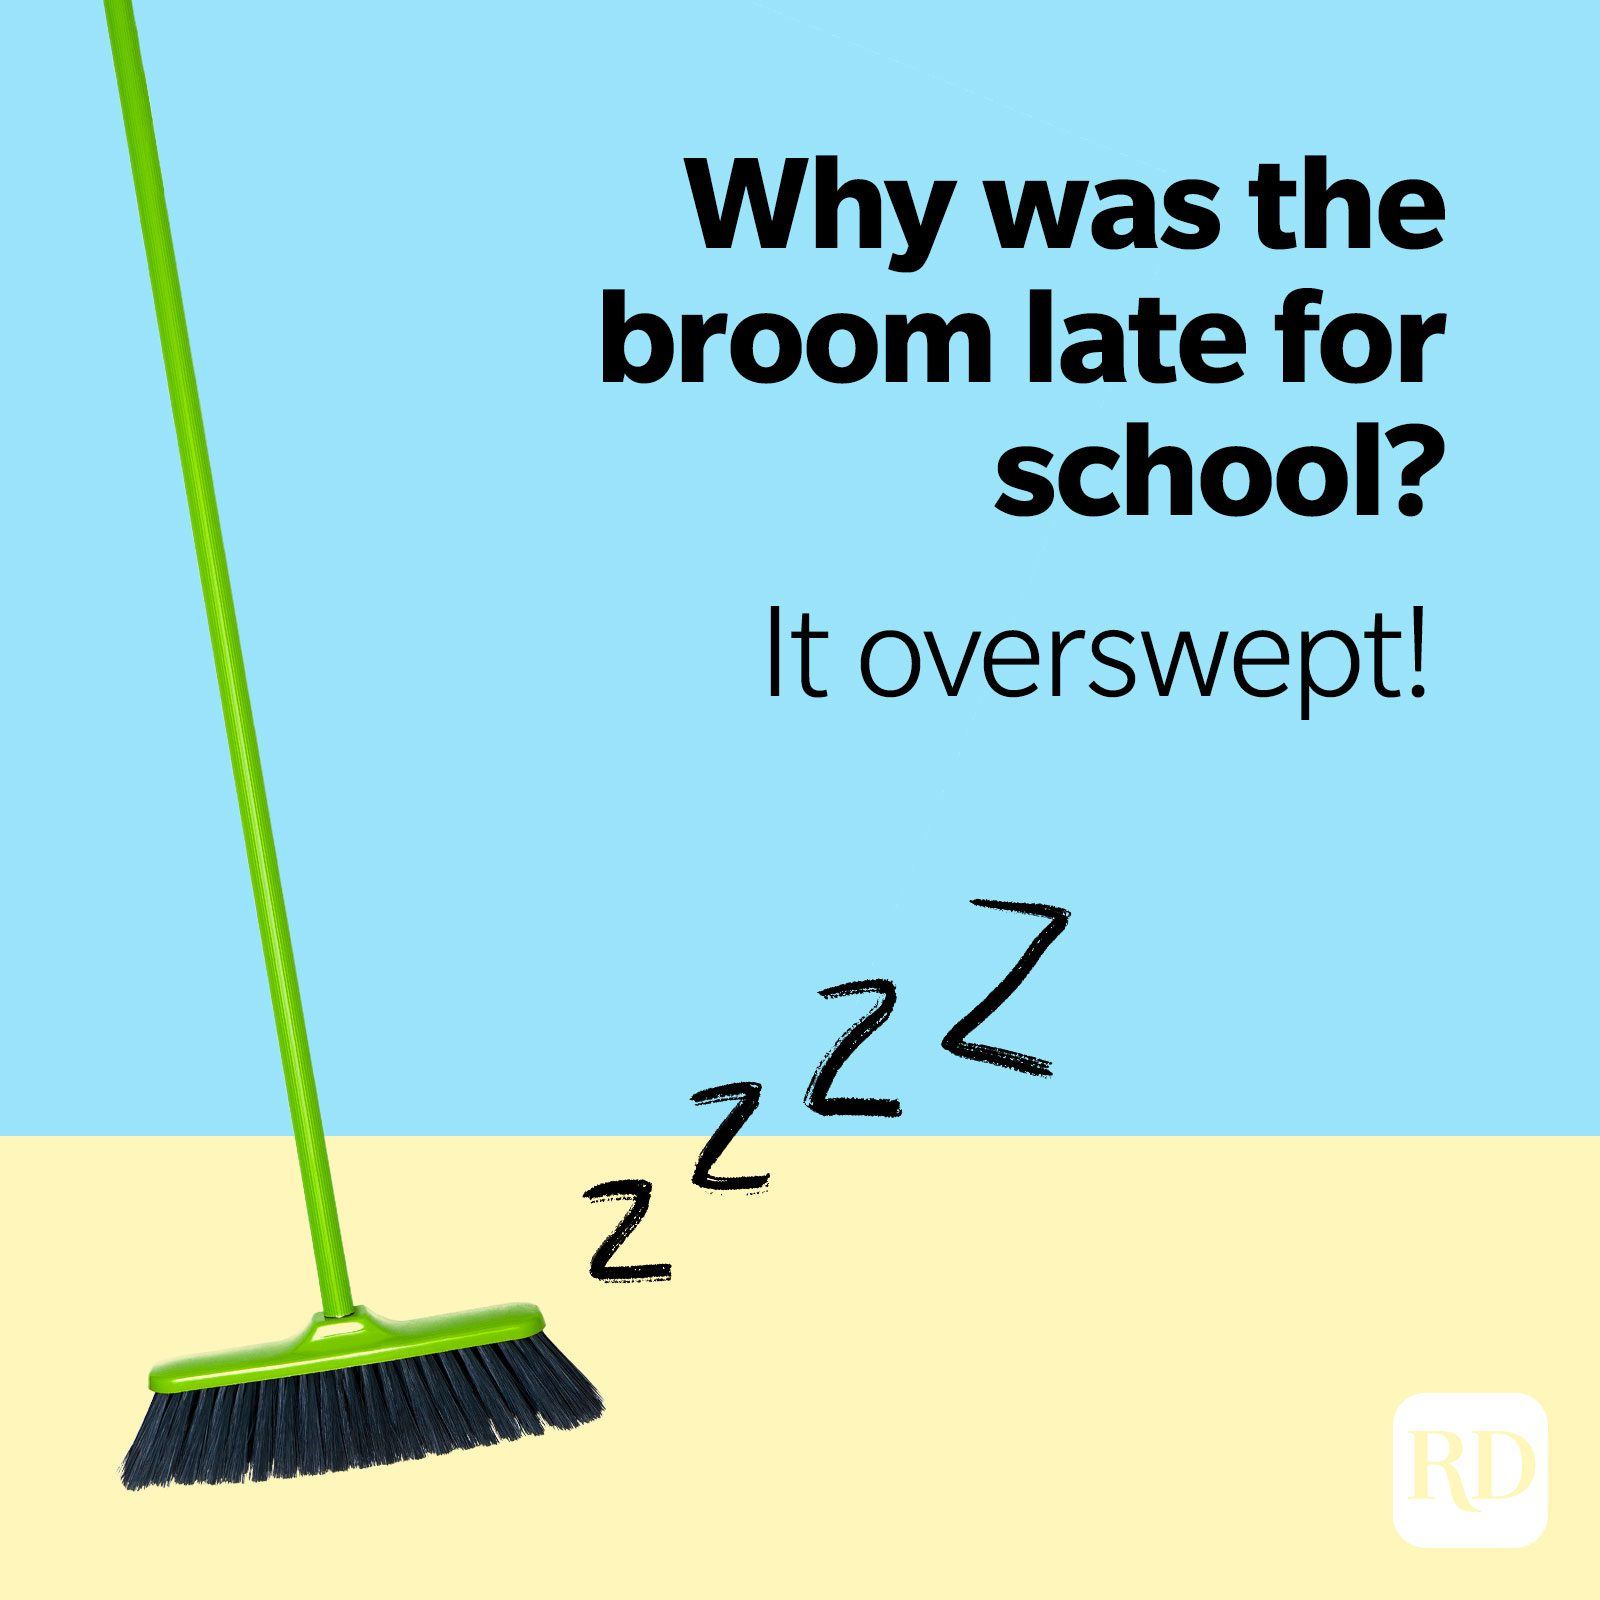 17. Why was the broom late for school? It overswept!